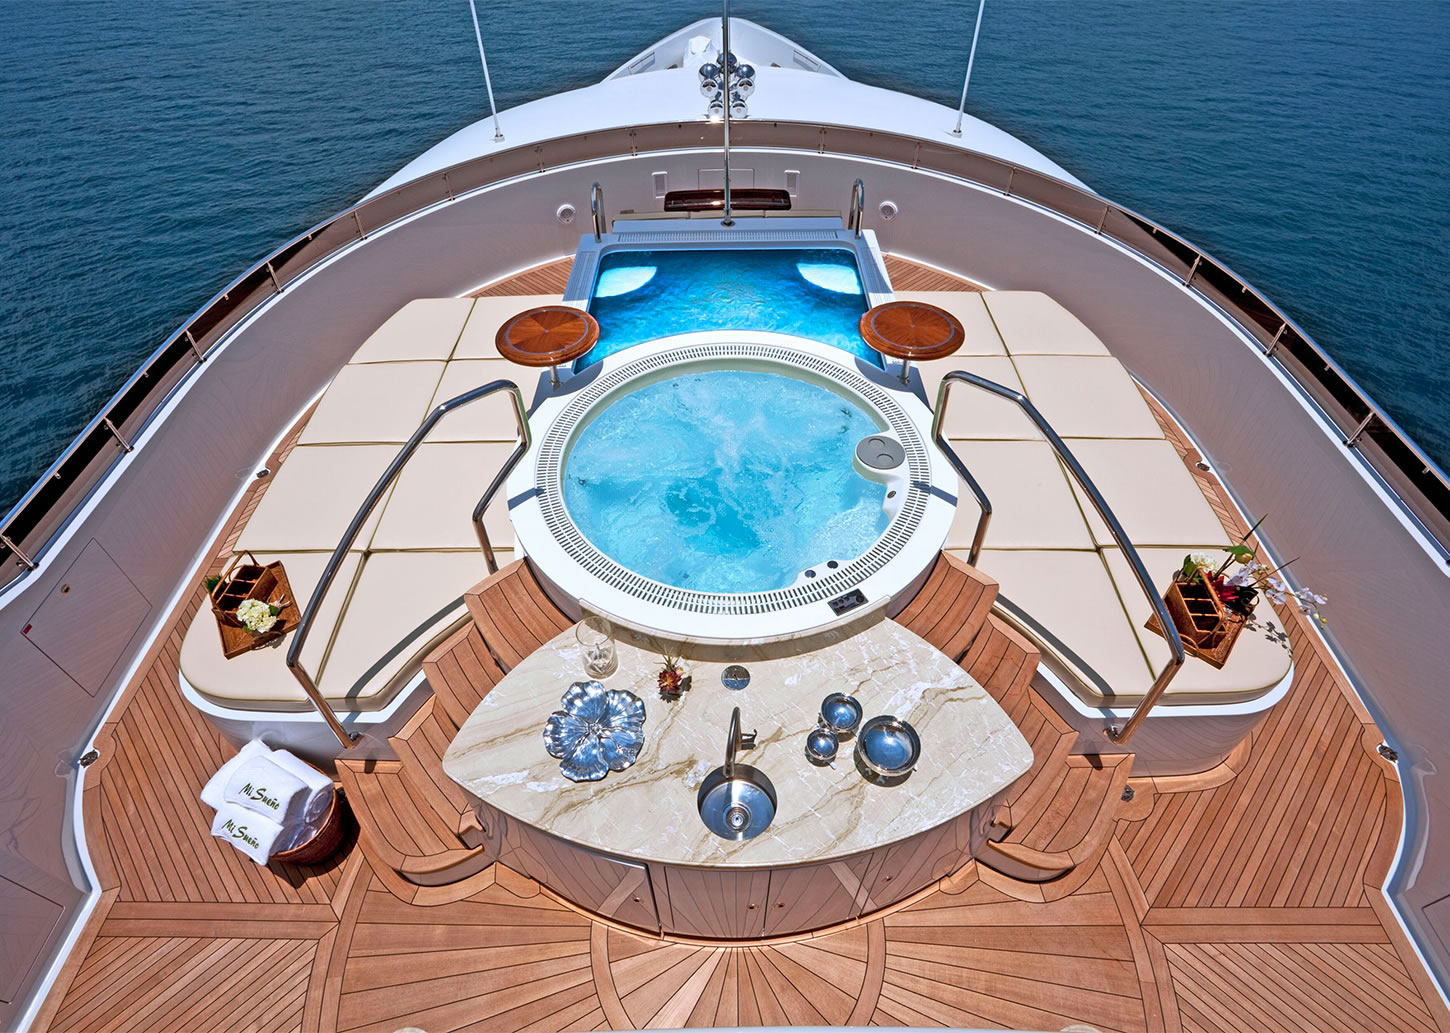 Luxury Yacht Sales | Worth Avenue Yachts - Leading yacht brokers